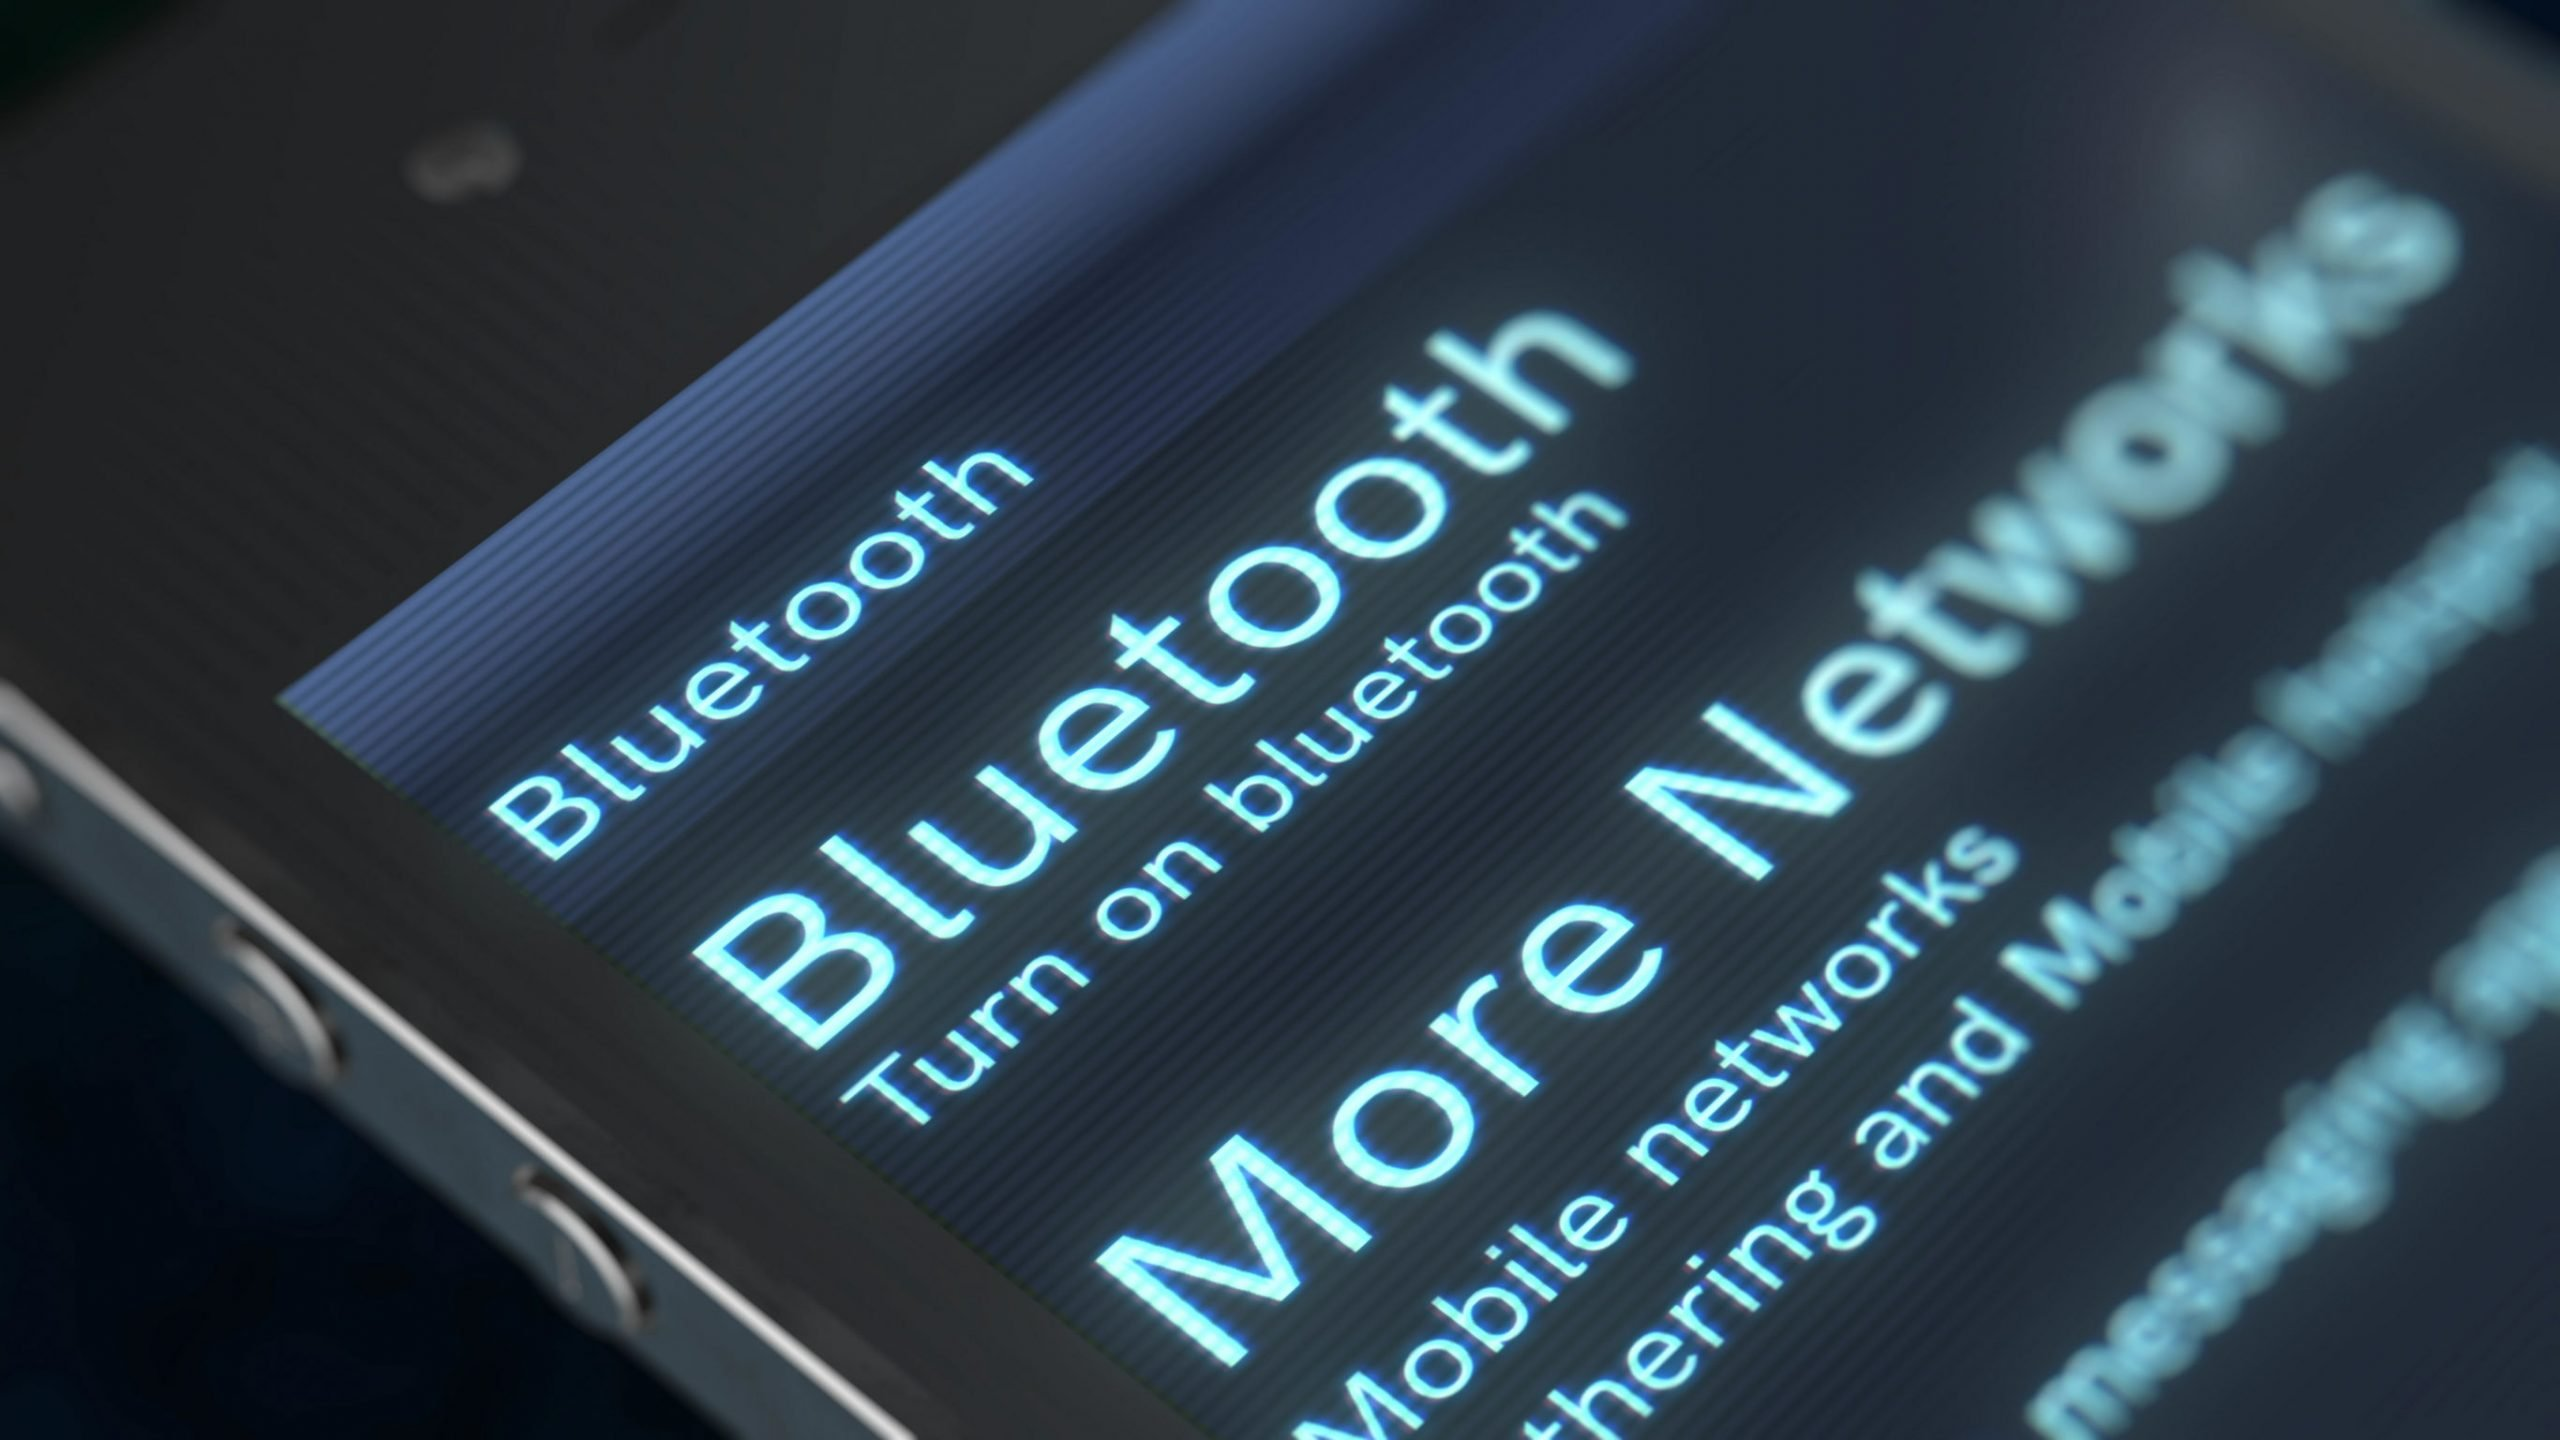 Is Bluetooth Safe?